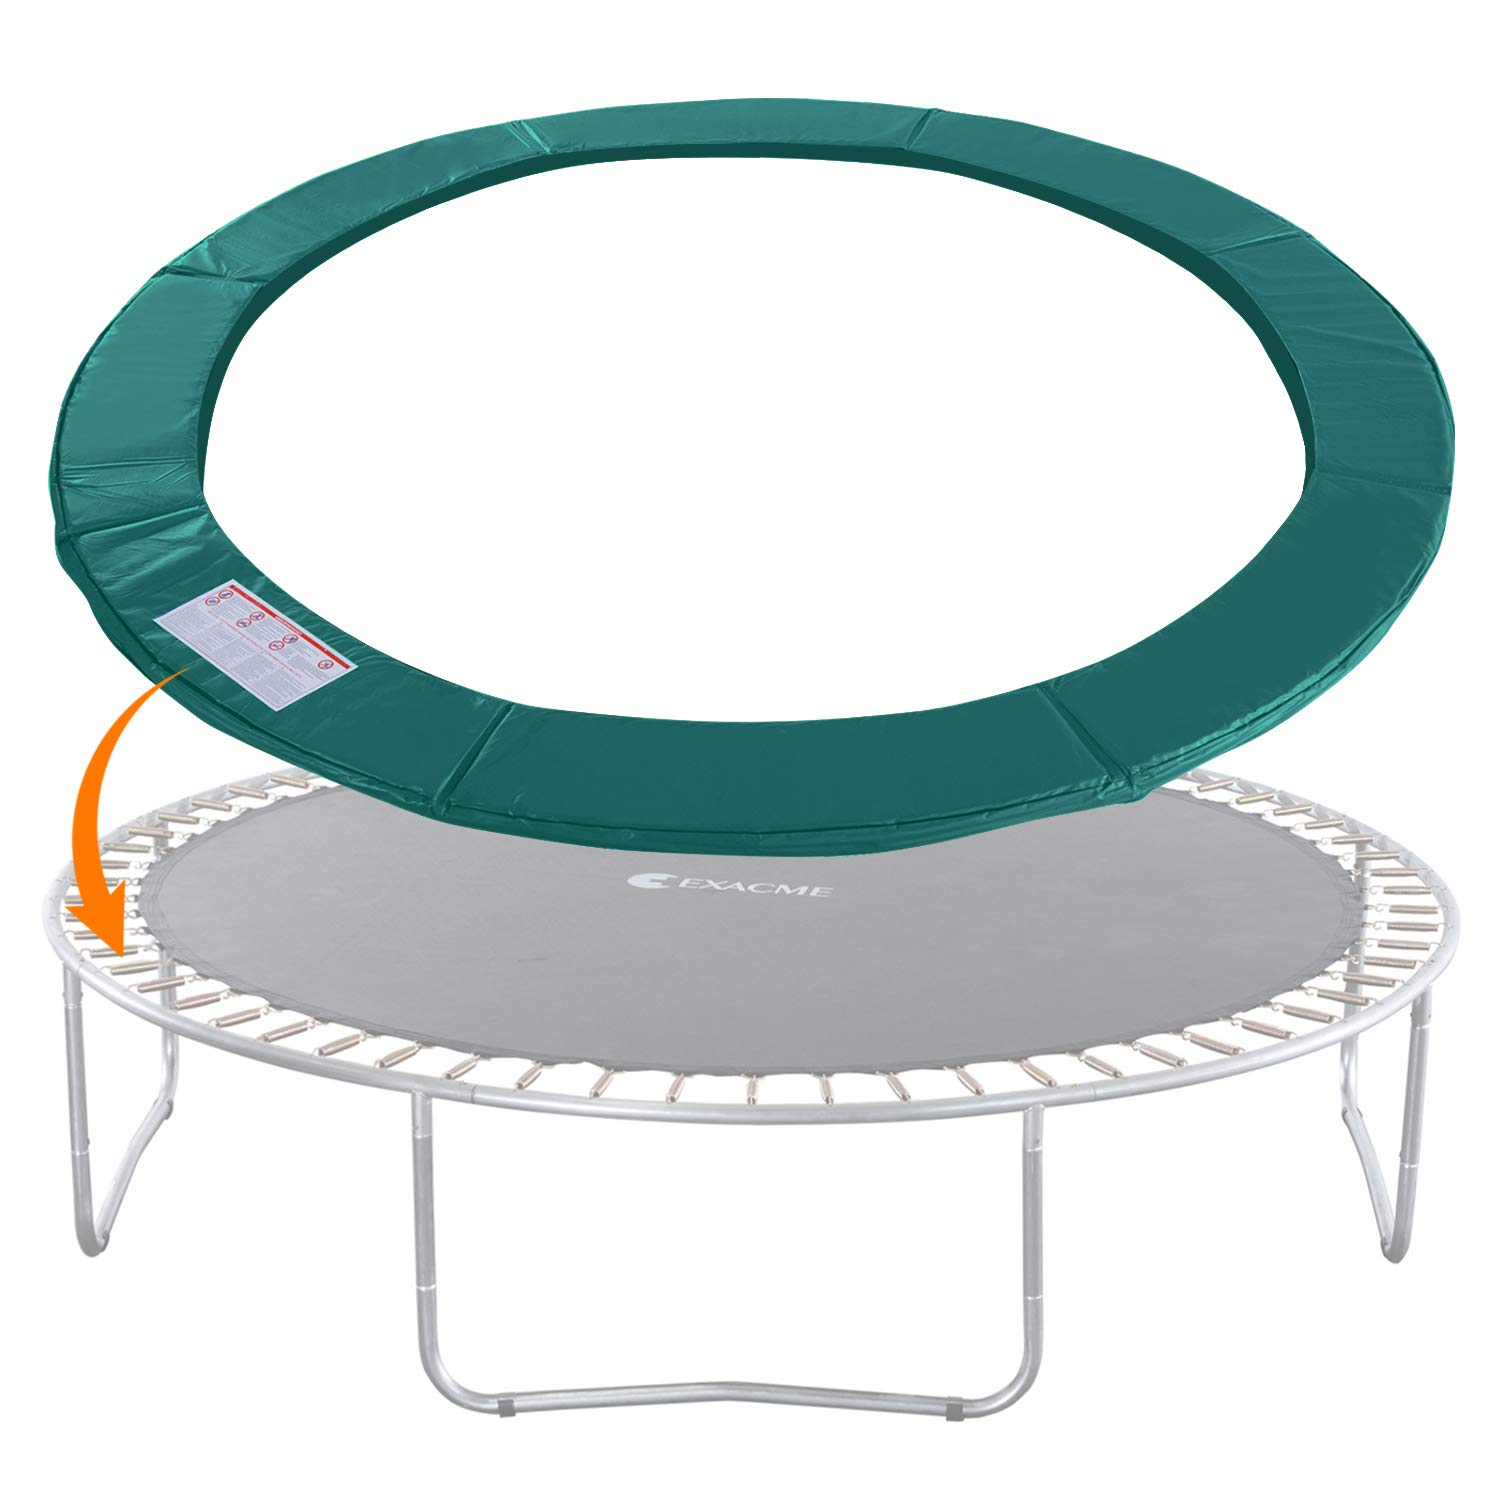 Exacme Trampoline Replacement Safety Pad Round Spring Cover, No Slots (Green, 14 Foot) by Exacme